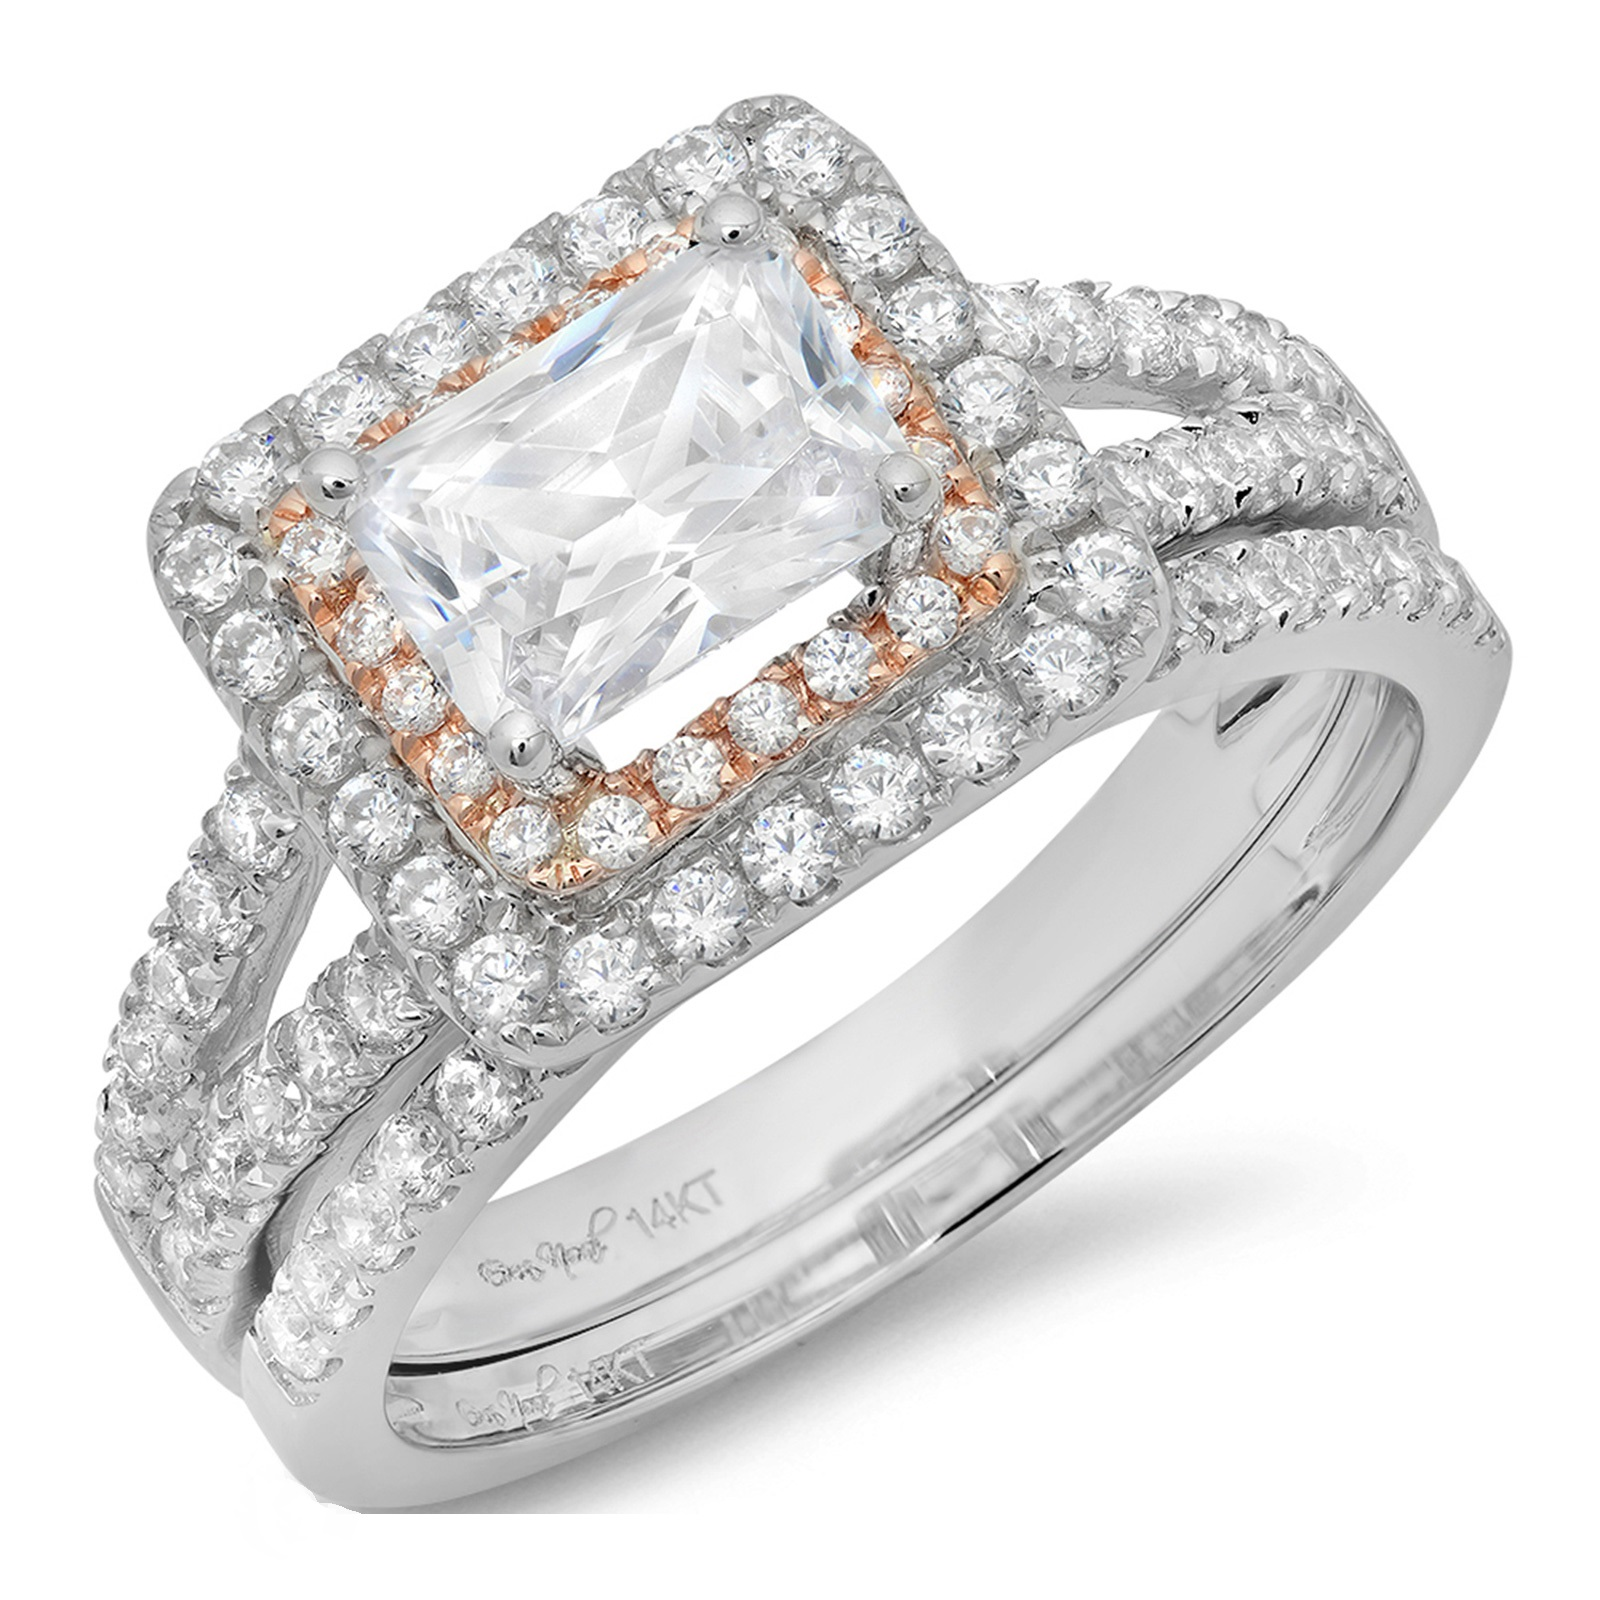 1.80 CT Emerald Cut Sim Diamond Pave Halo Bridal Engagement Wedding Ring band set 14k White Rose Gold, Size 10.75